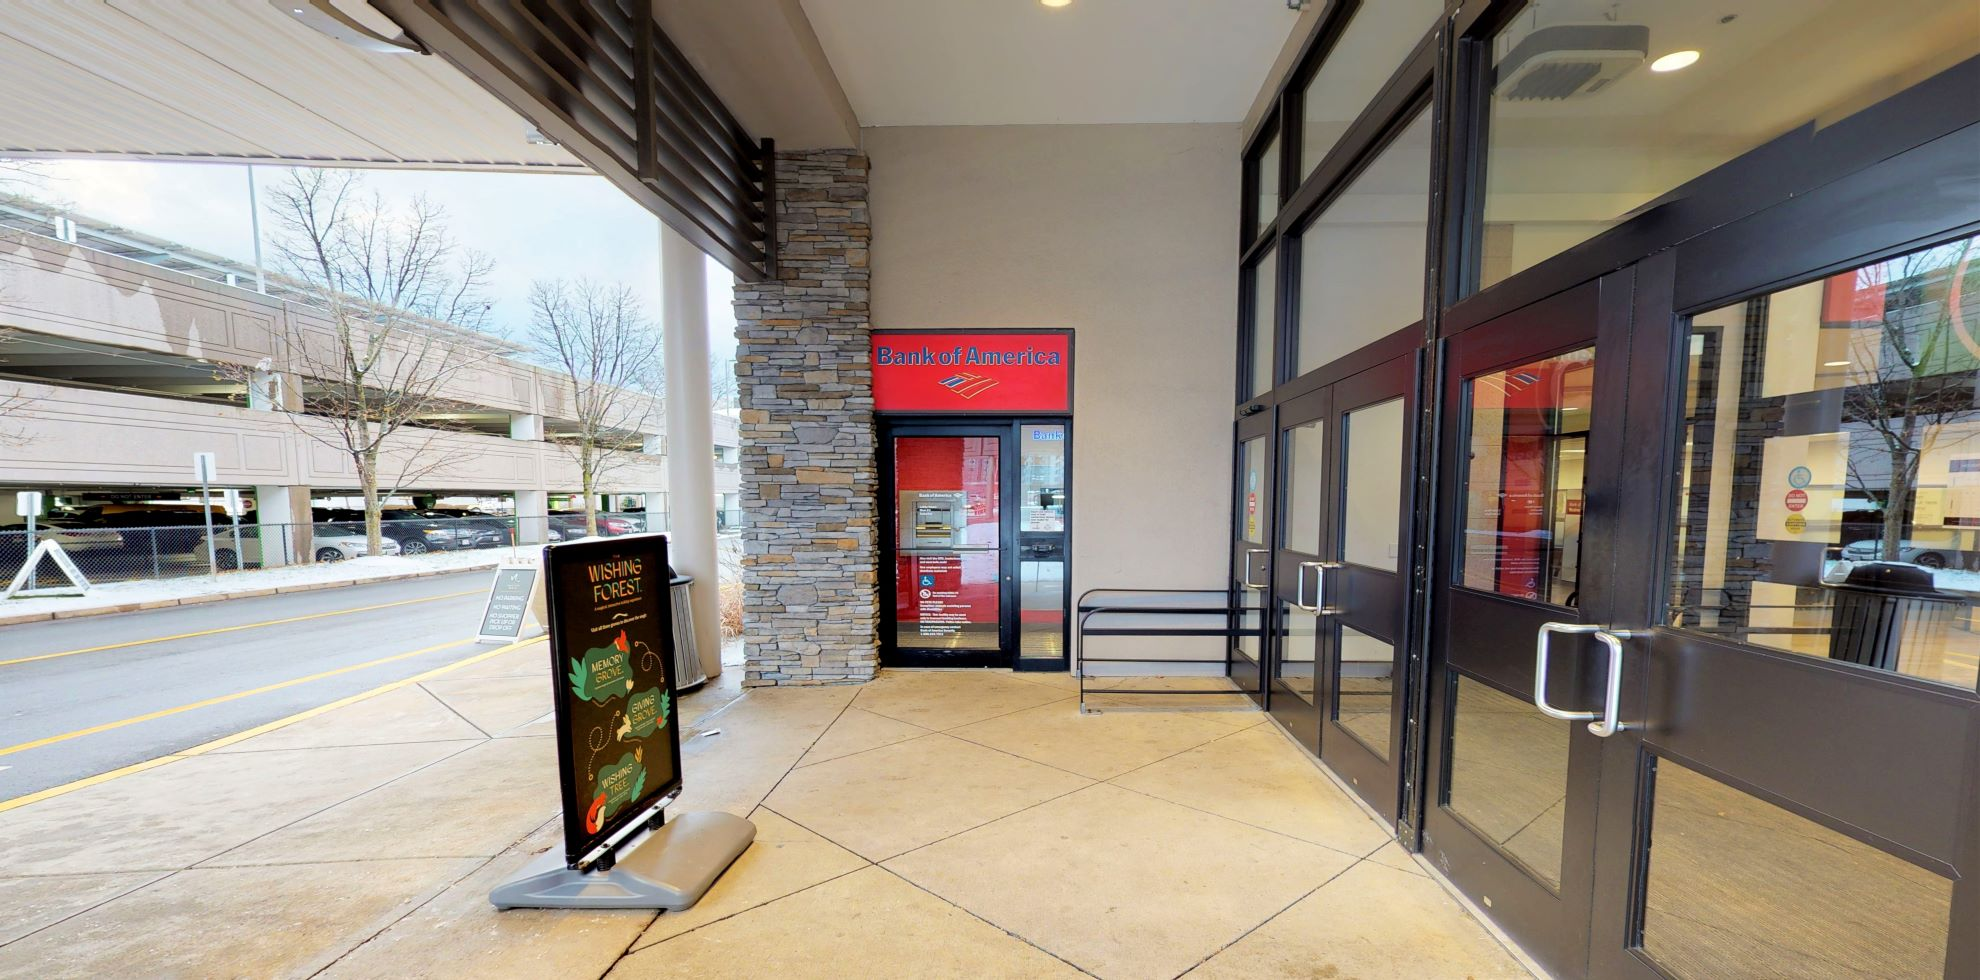 Bank of America financial center with walk-up ATM | 1245 Worcester Rd, Natick, MA 01760